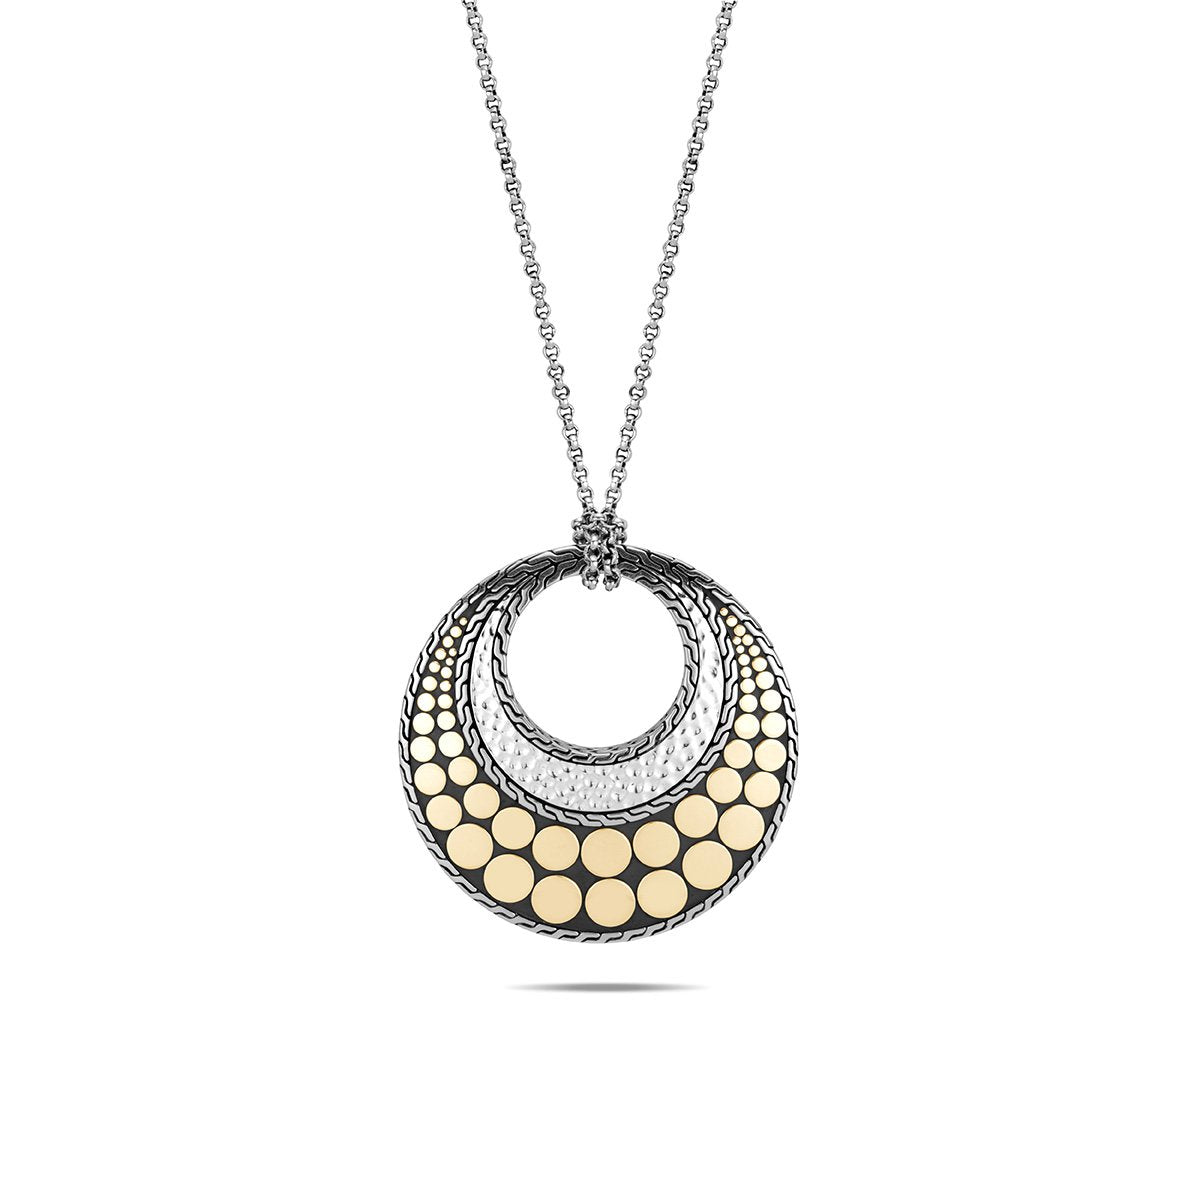 John Hardy Dot Sterling Silver and 18K Yellow Gold Reversible Pendant Necklace